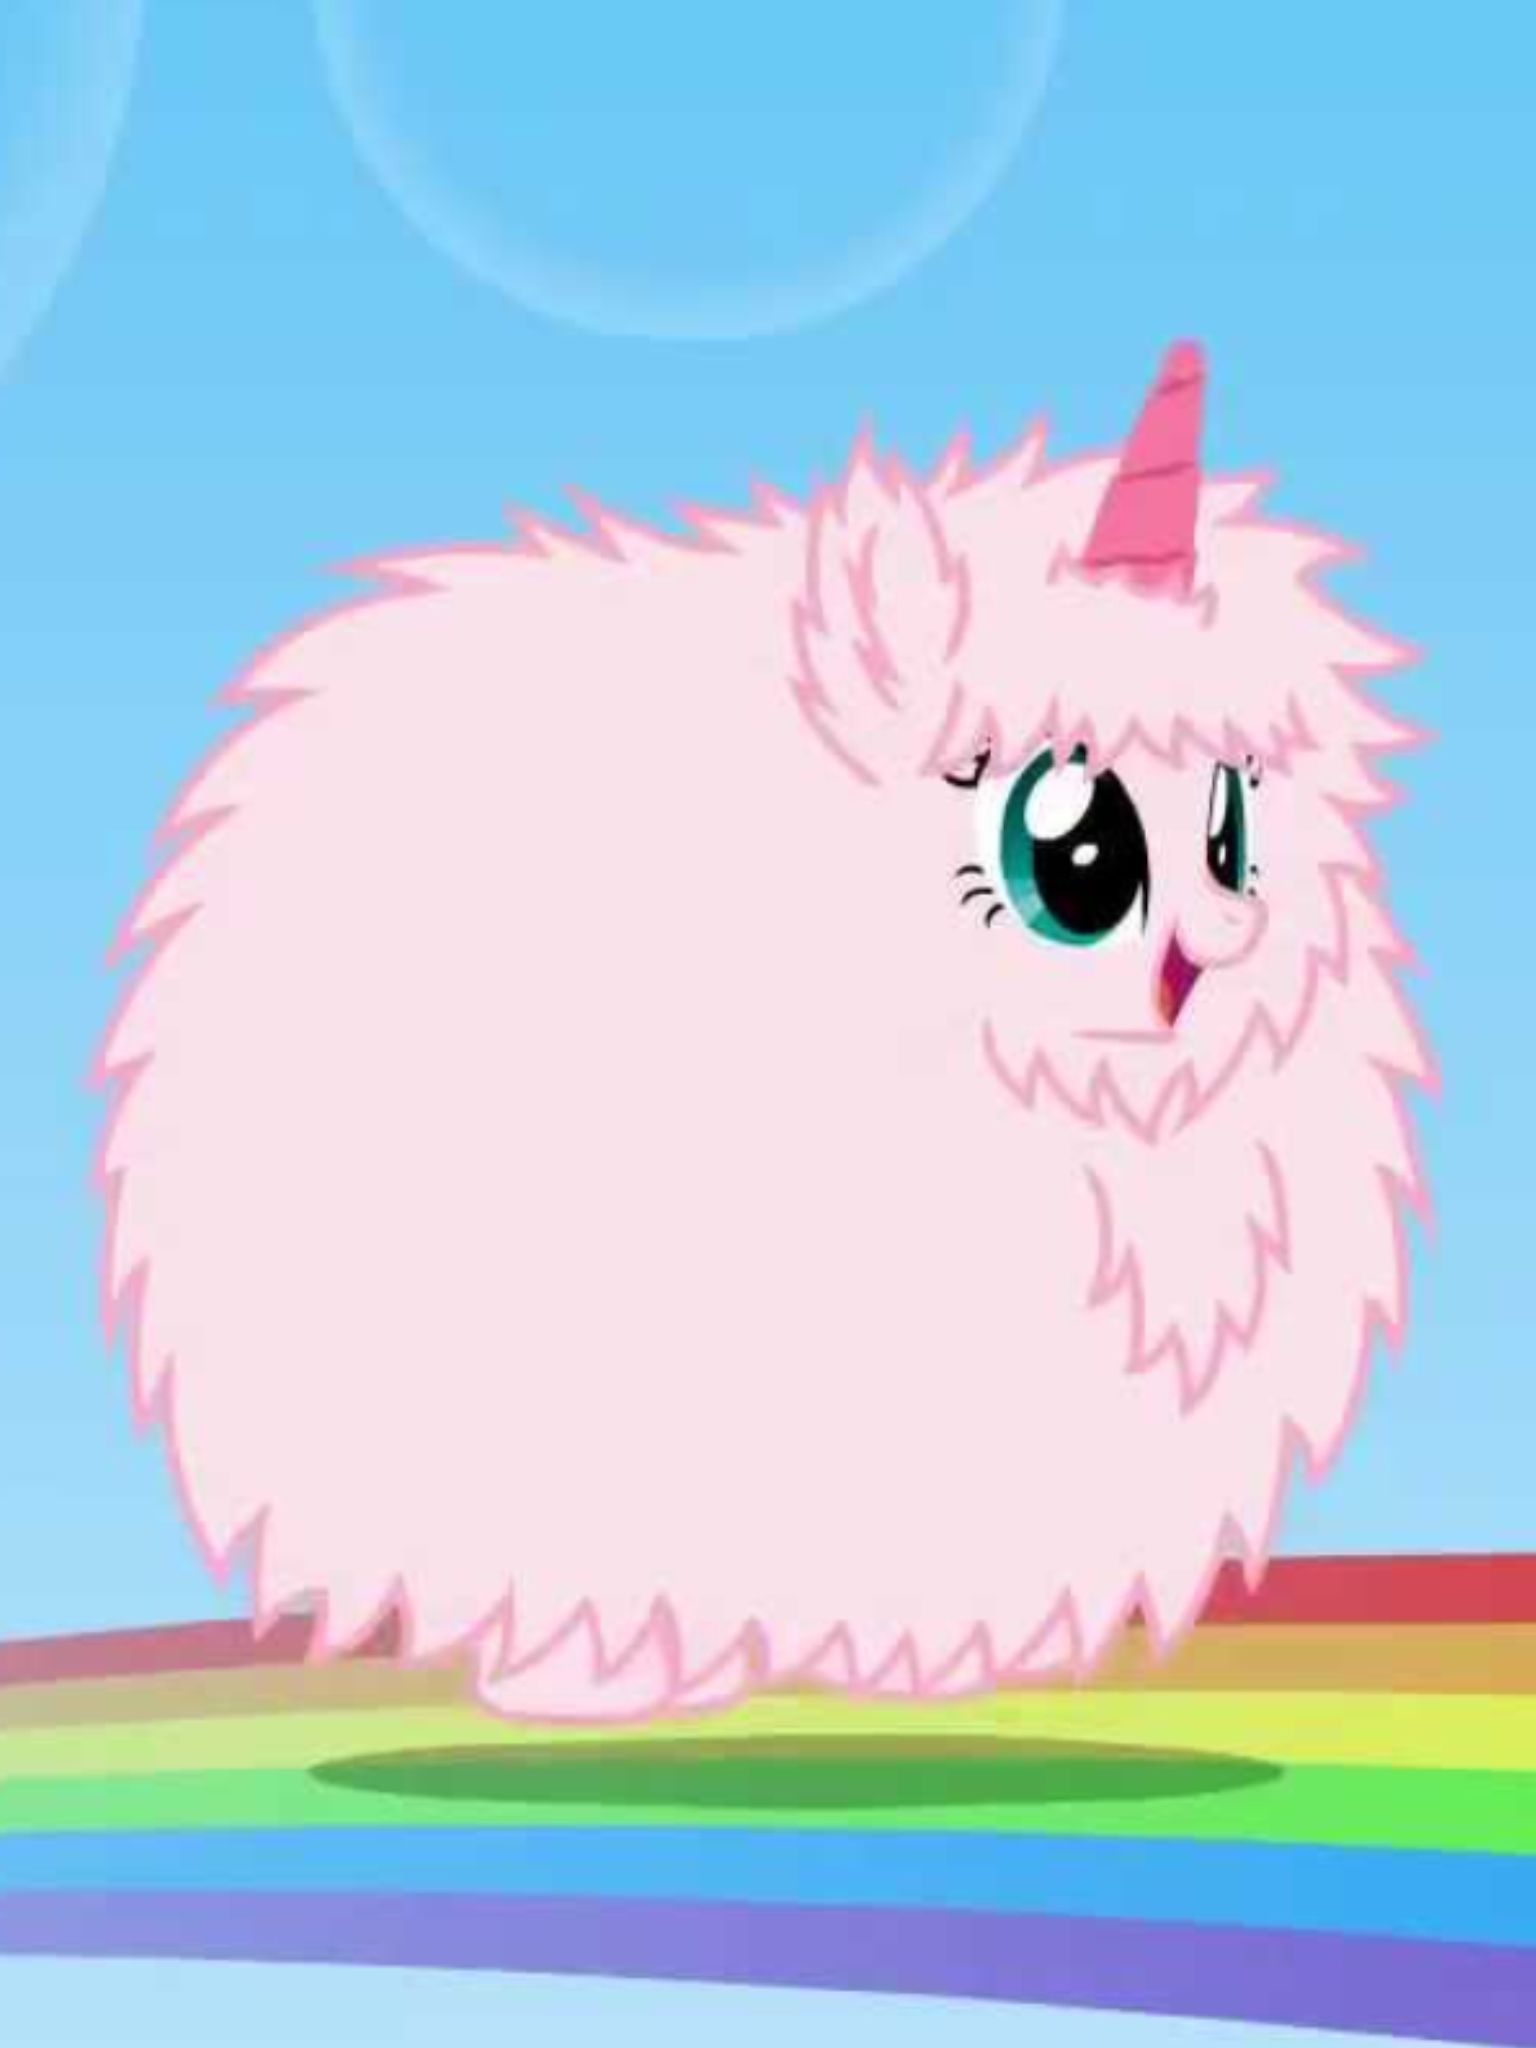 Pink fluffy unicorns dancing on rainbows!! | pink fluffy ...